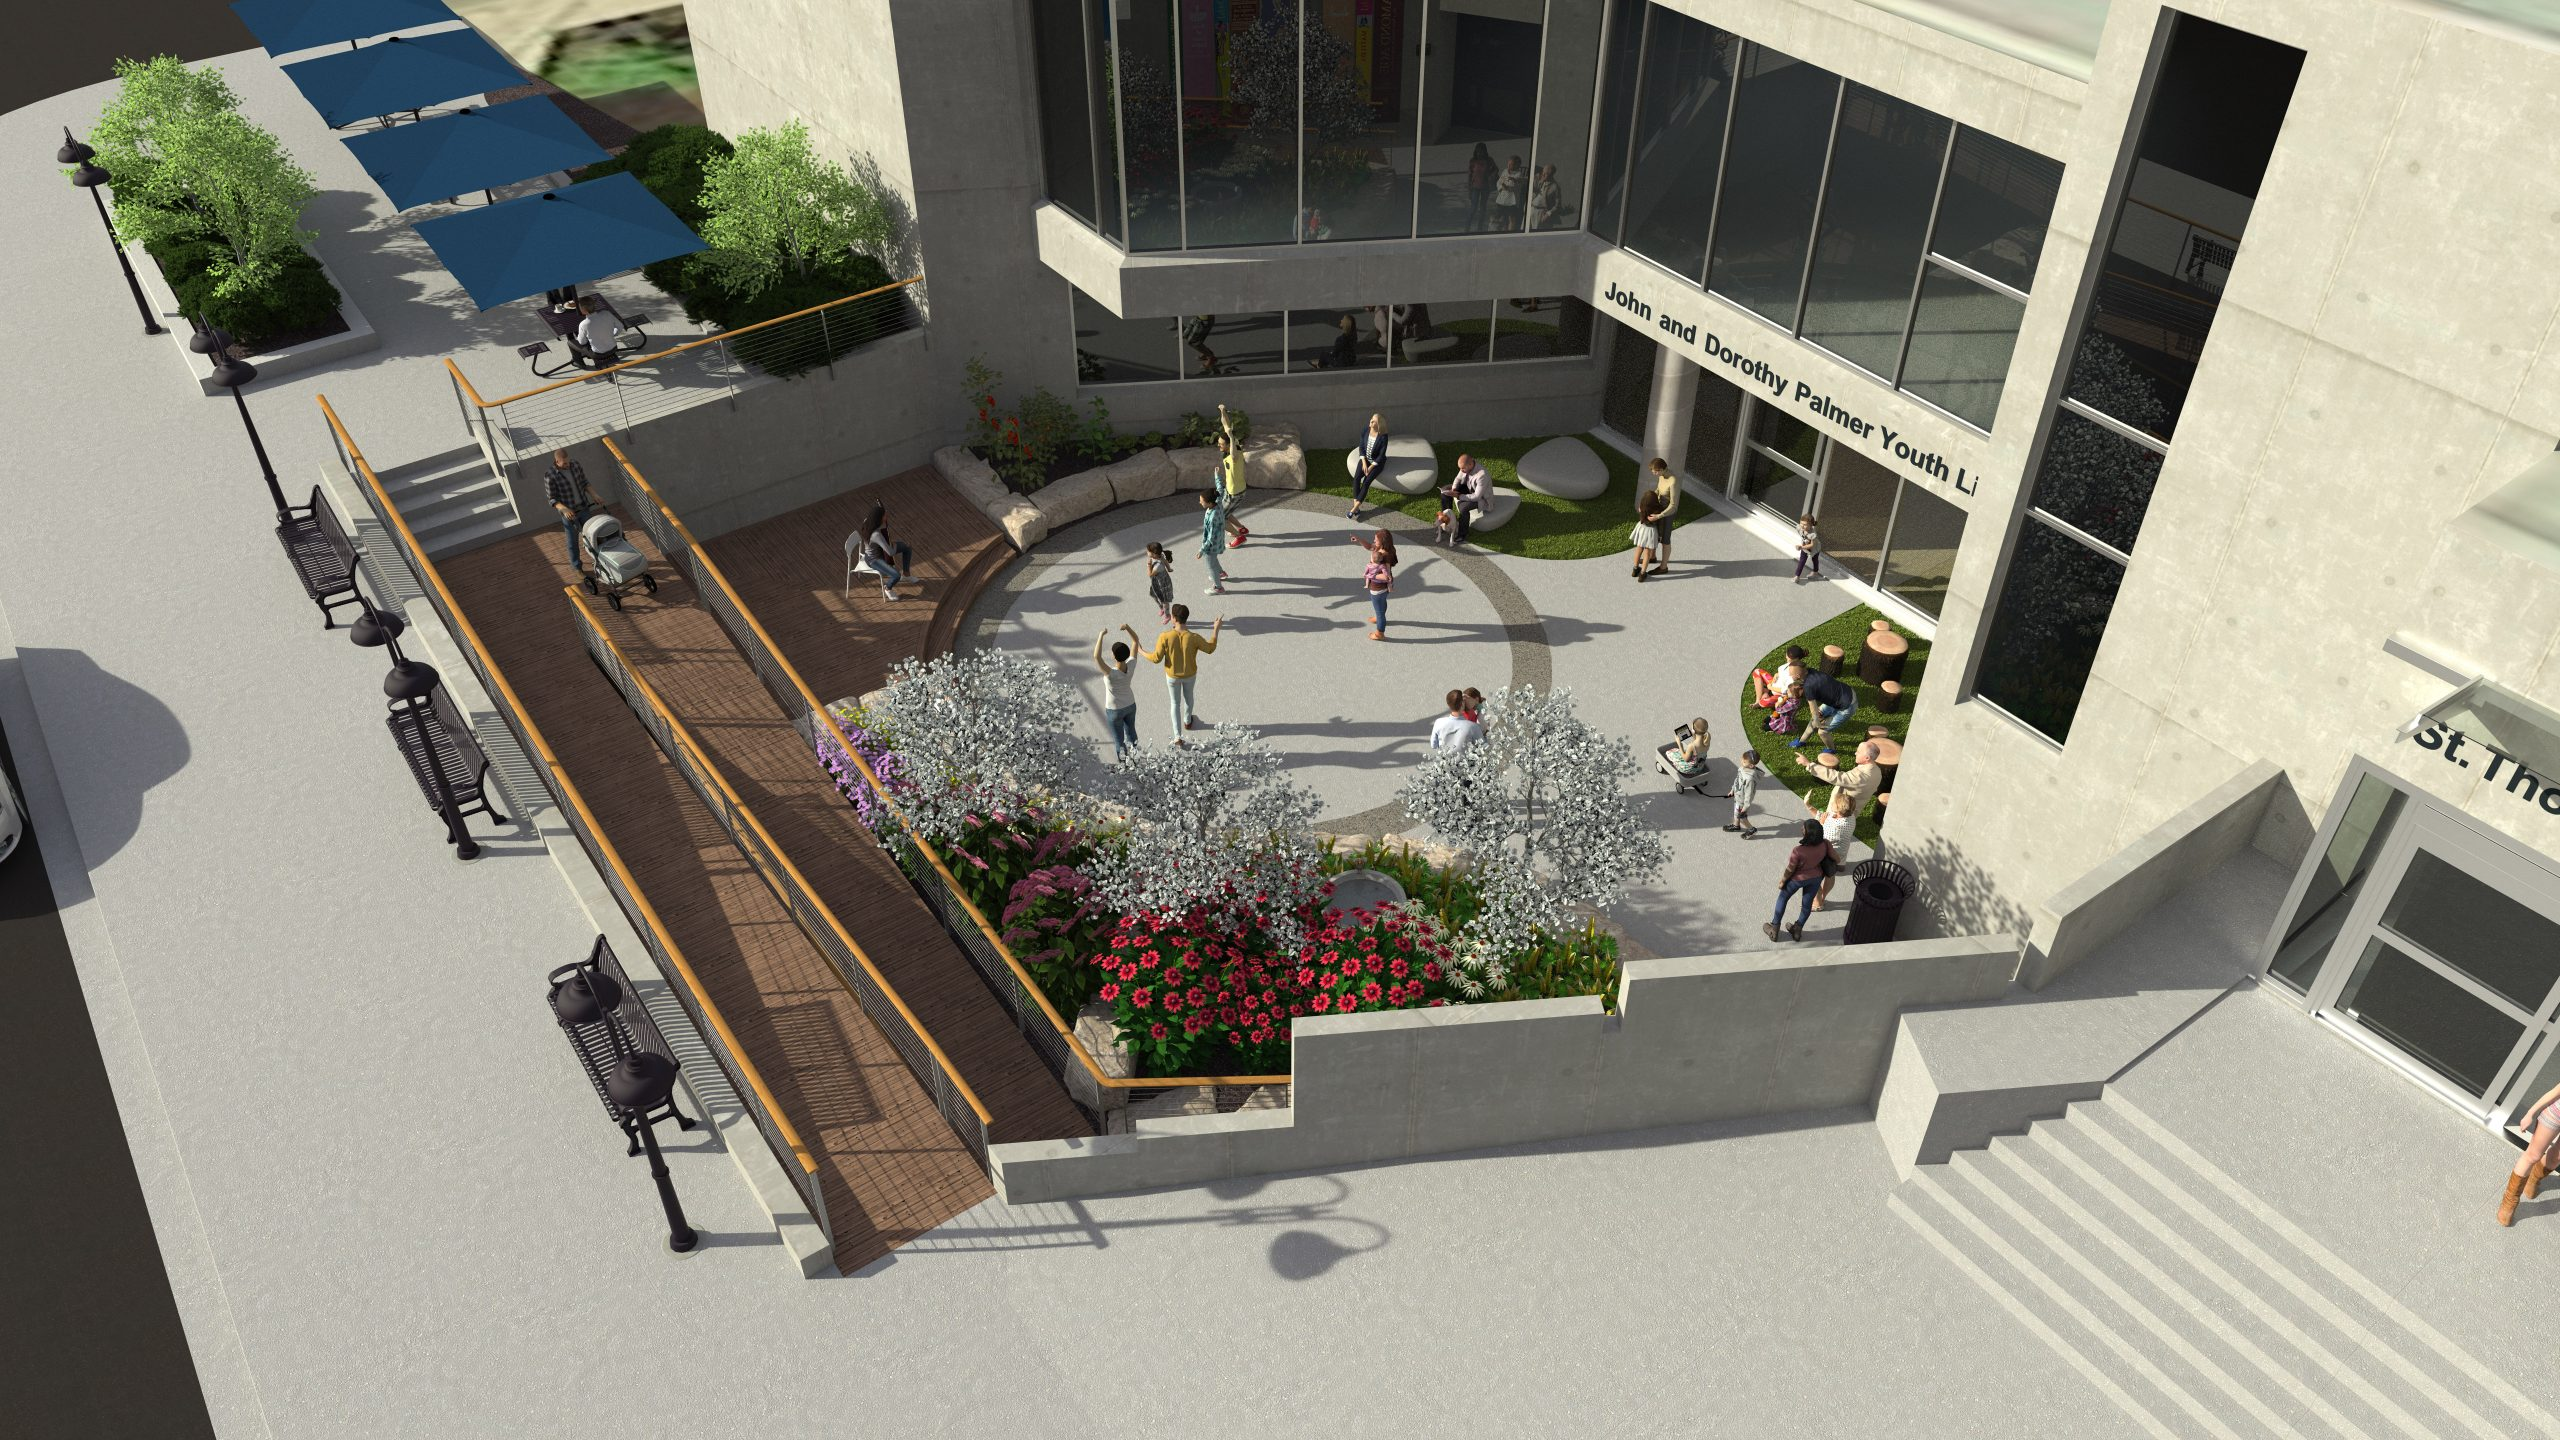 Computer rendering of circular courtyard with people listening to a musician on a stage